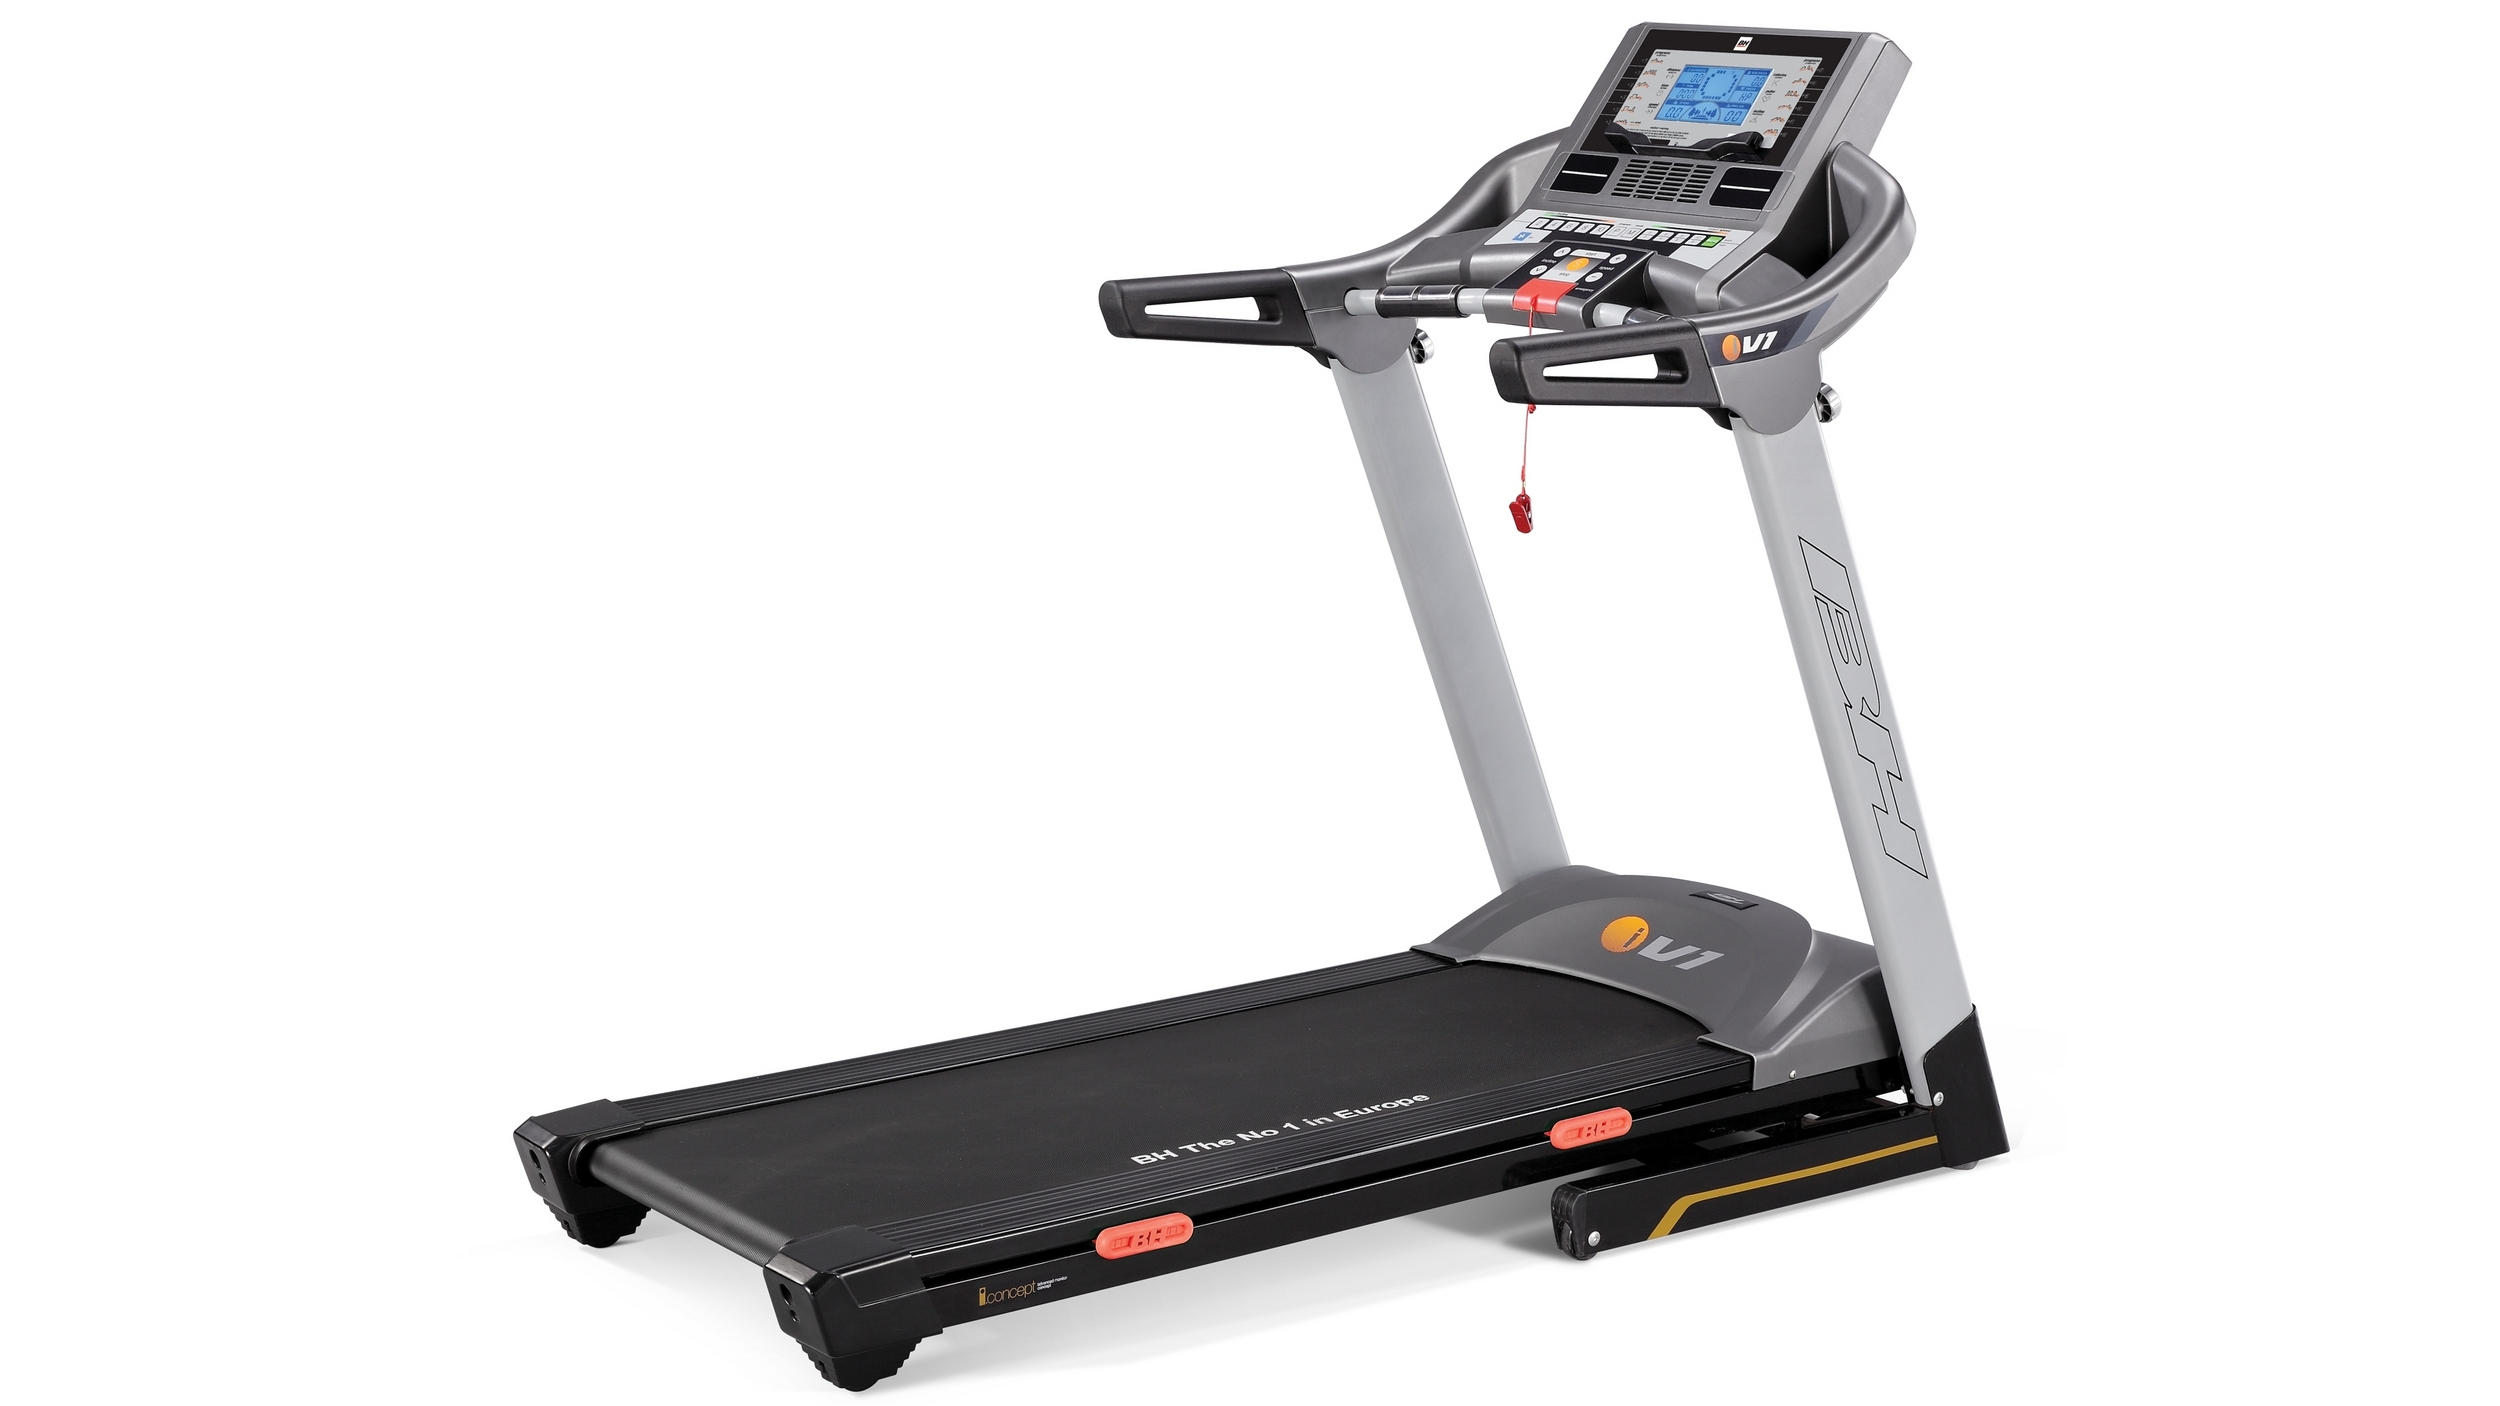 The BH Fitness i.V1 i.Concept Treadmill